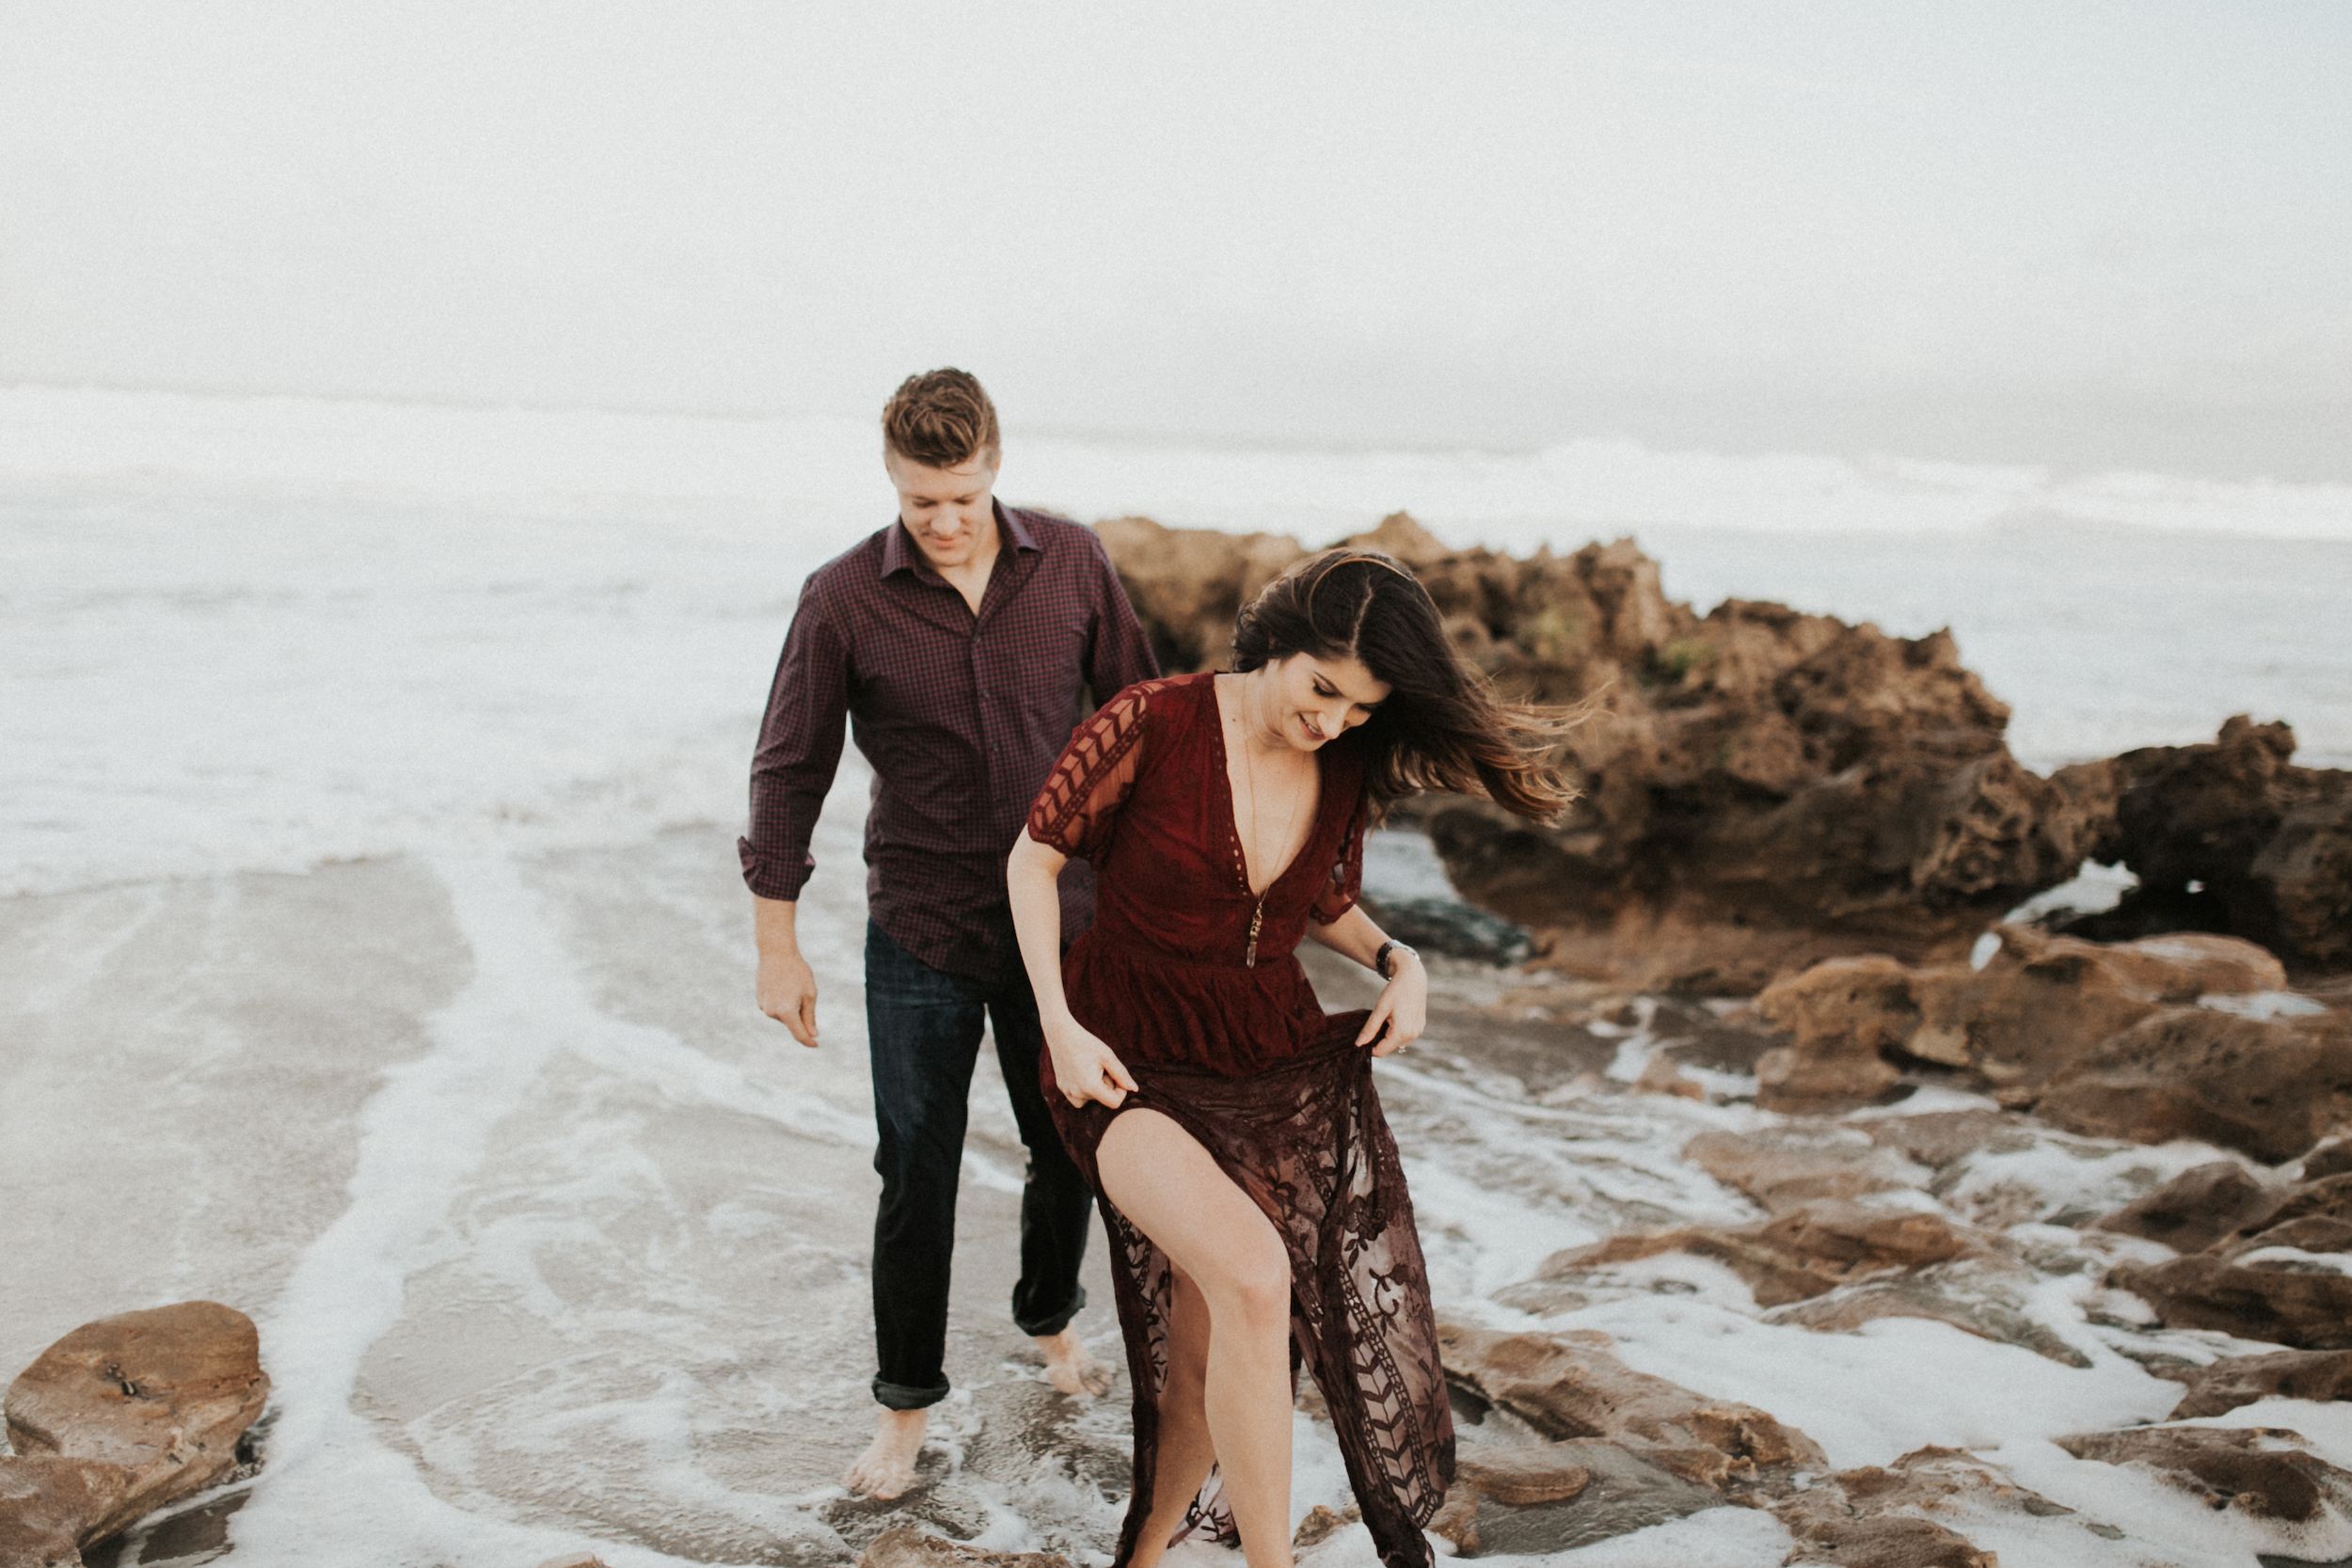 jupiter island engagement session with flowing dress in water.jpg